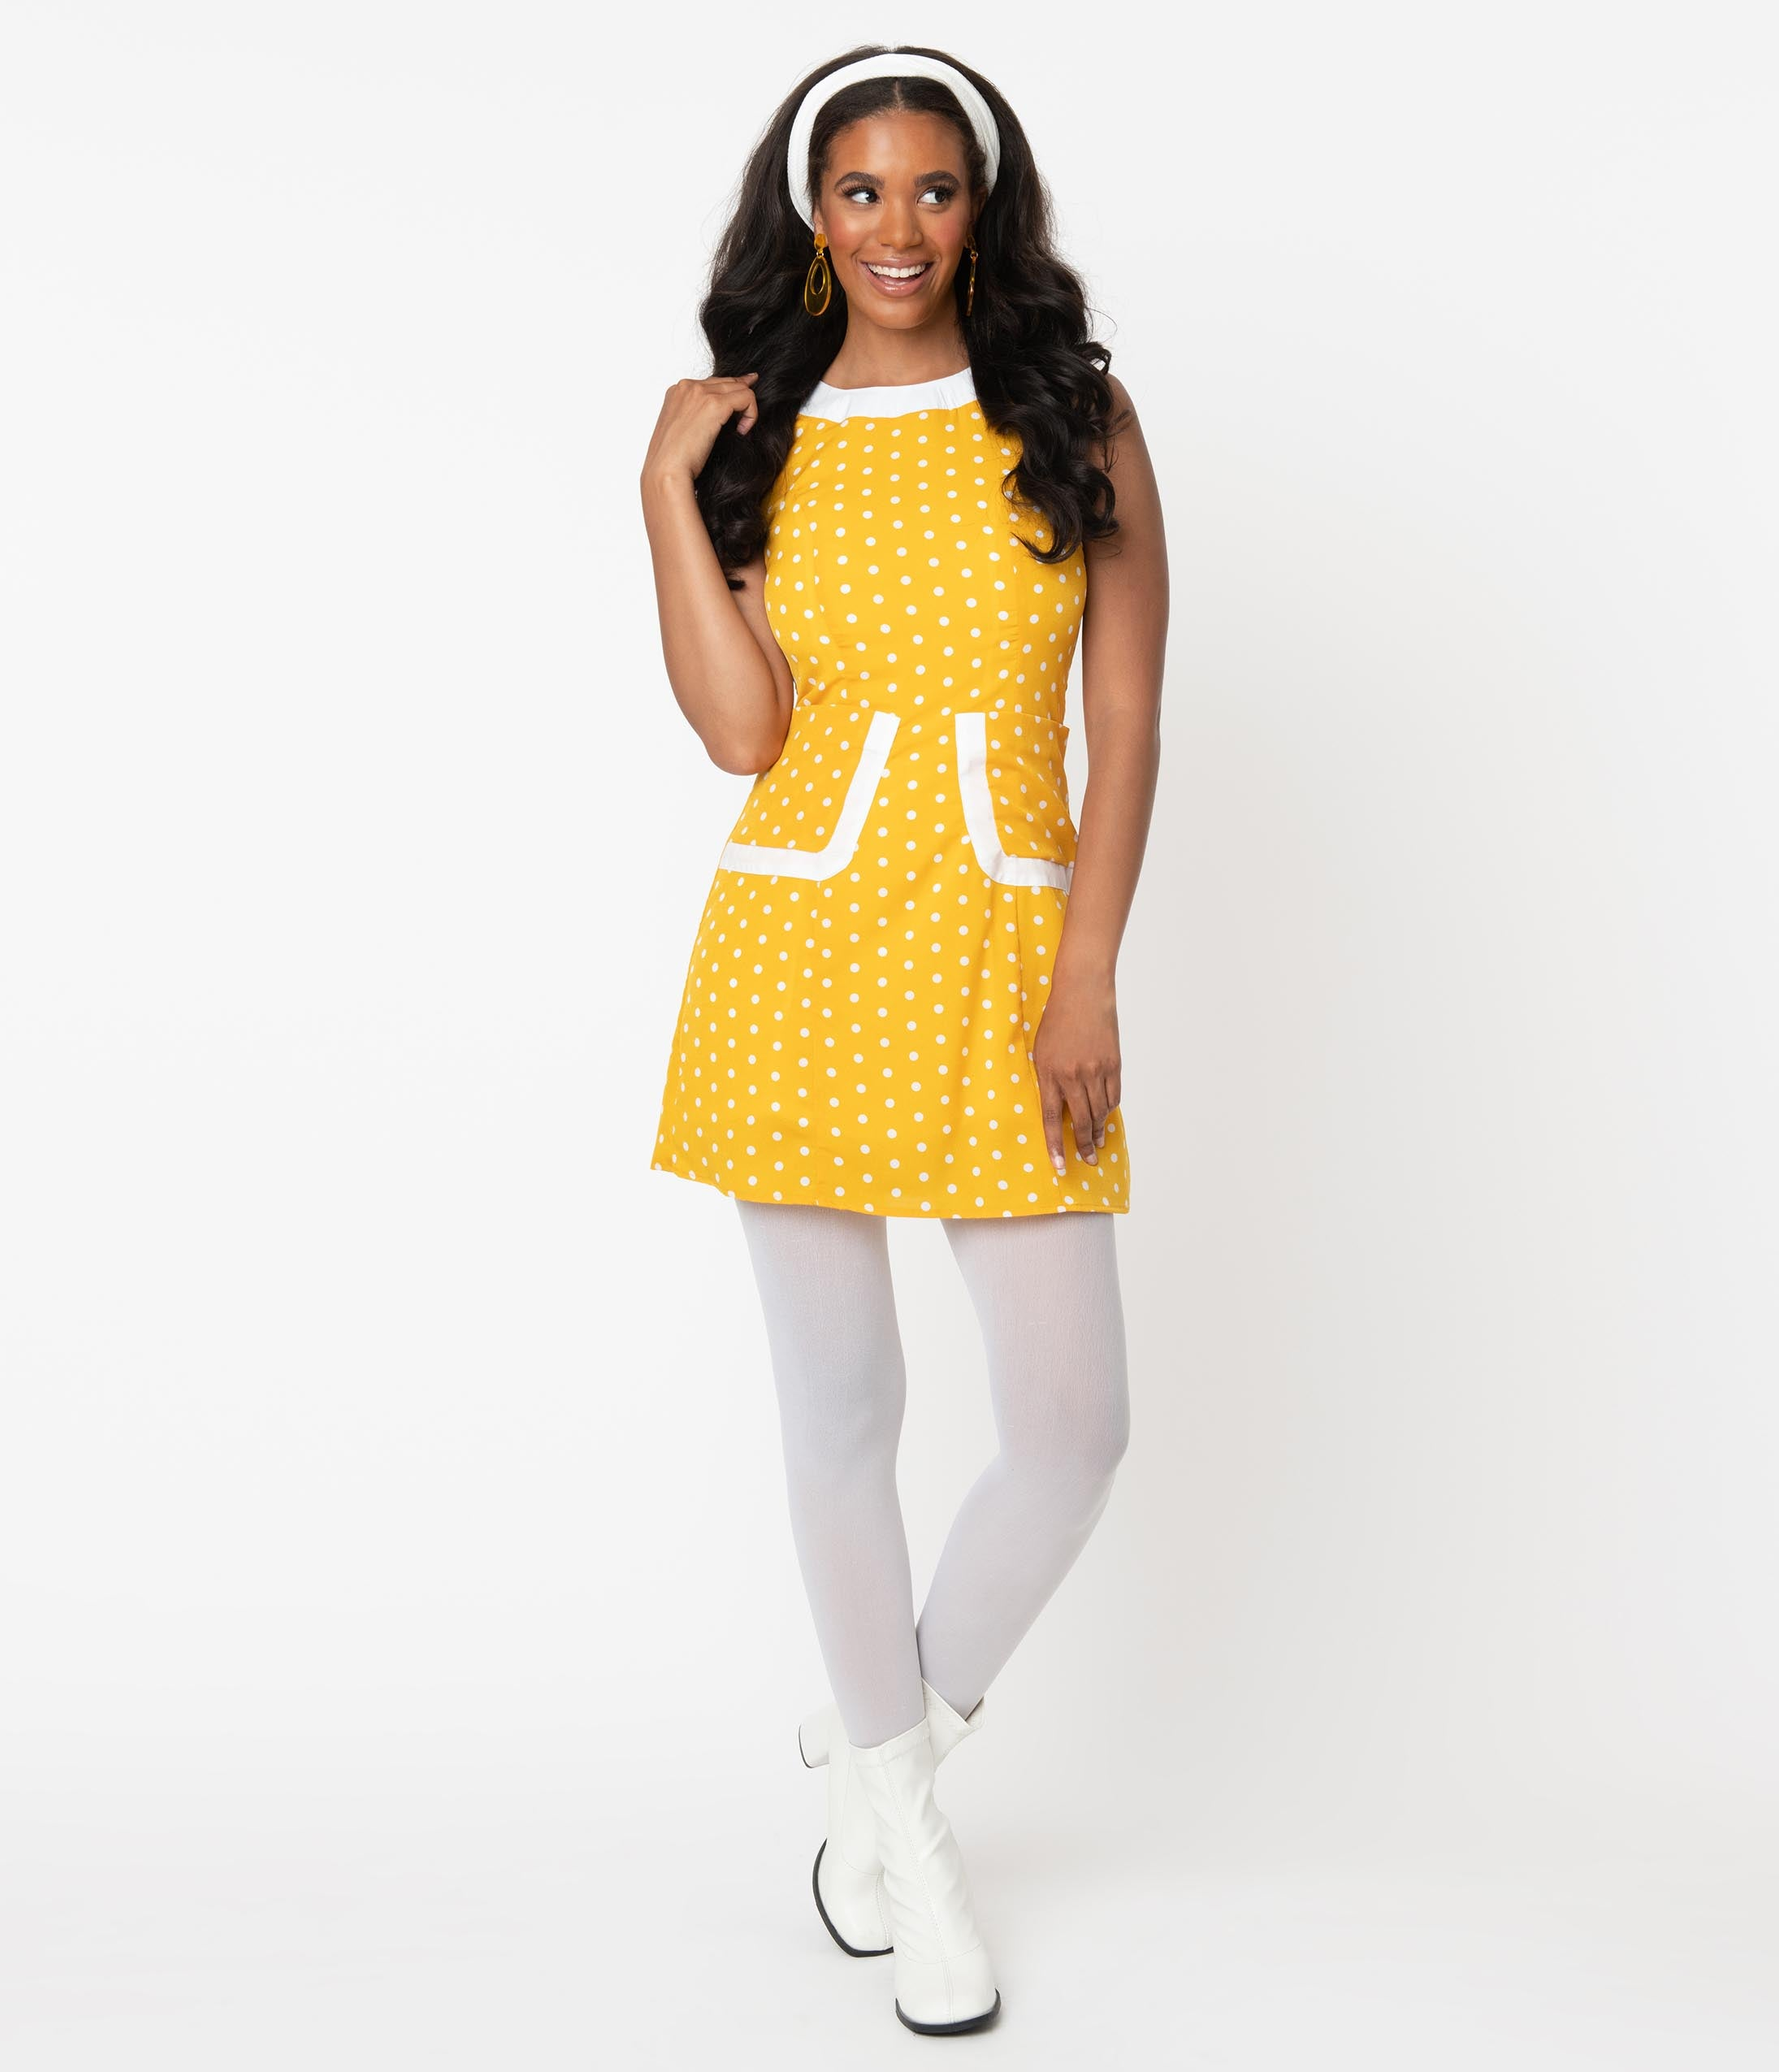 Vintage Style Dresses | Vintage Inspired Dresses Smak Parlour 1960S Mustard  White Polka Dot Liberated Fit  Flare Dress $72.00 AT vintagedancer.com